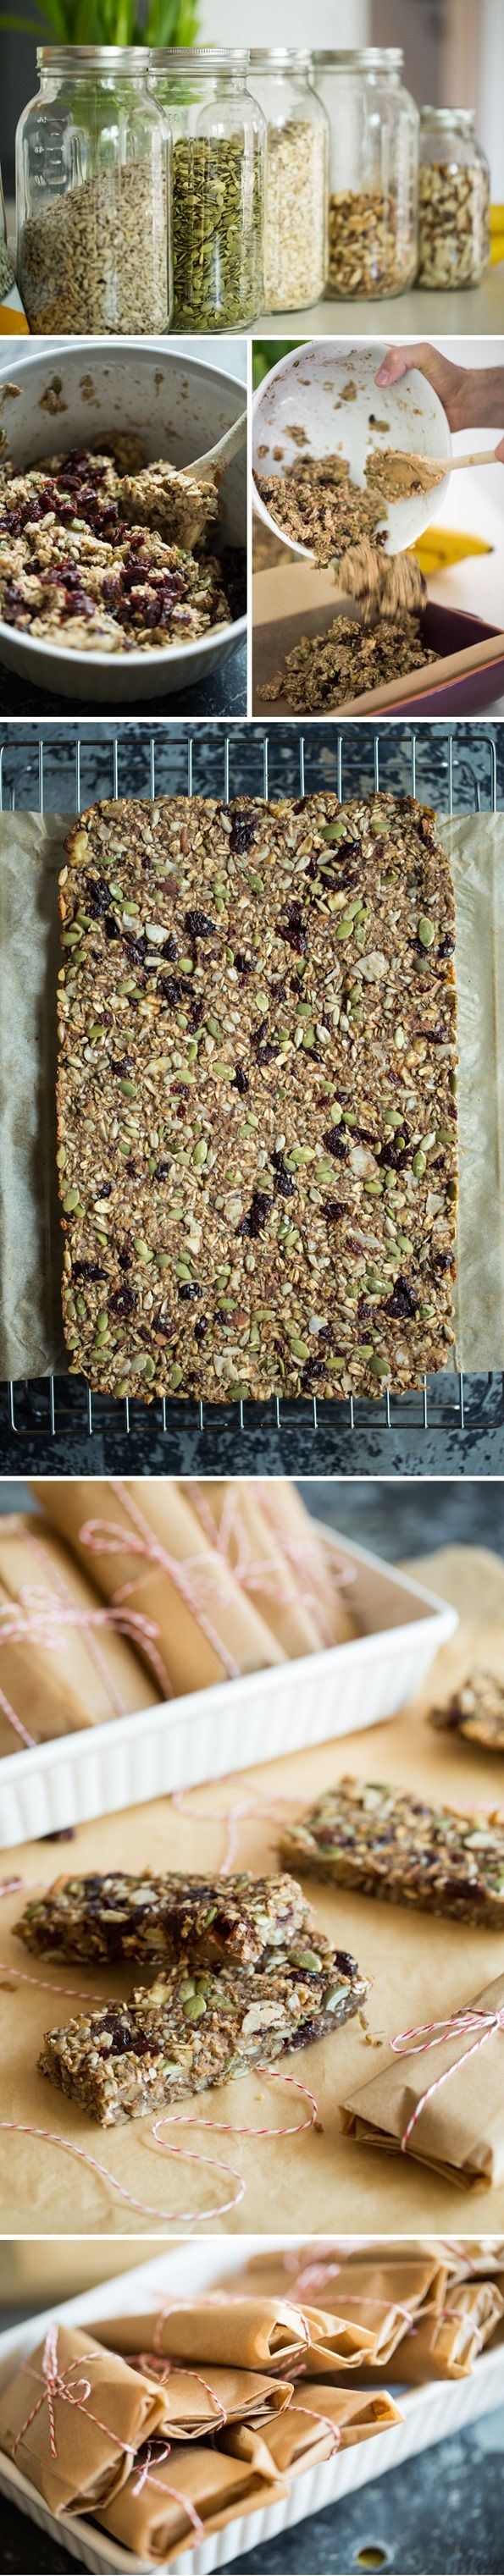 Feel Good Hearty Granola Bars — Oh She Glows make and freeze, contains banana but can freeze individually.